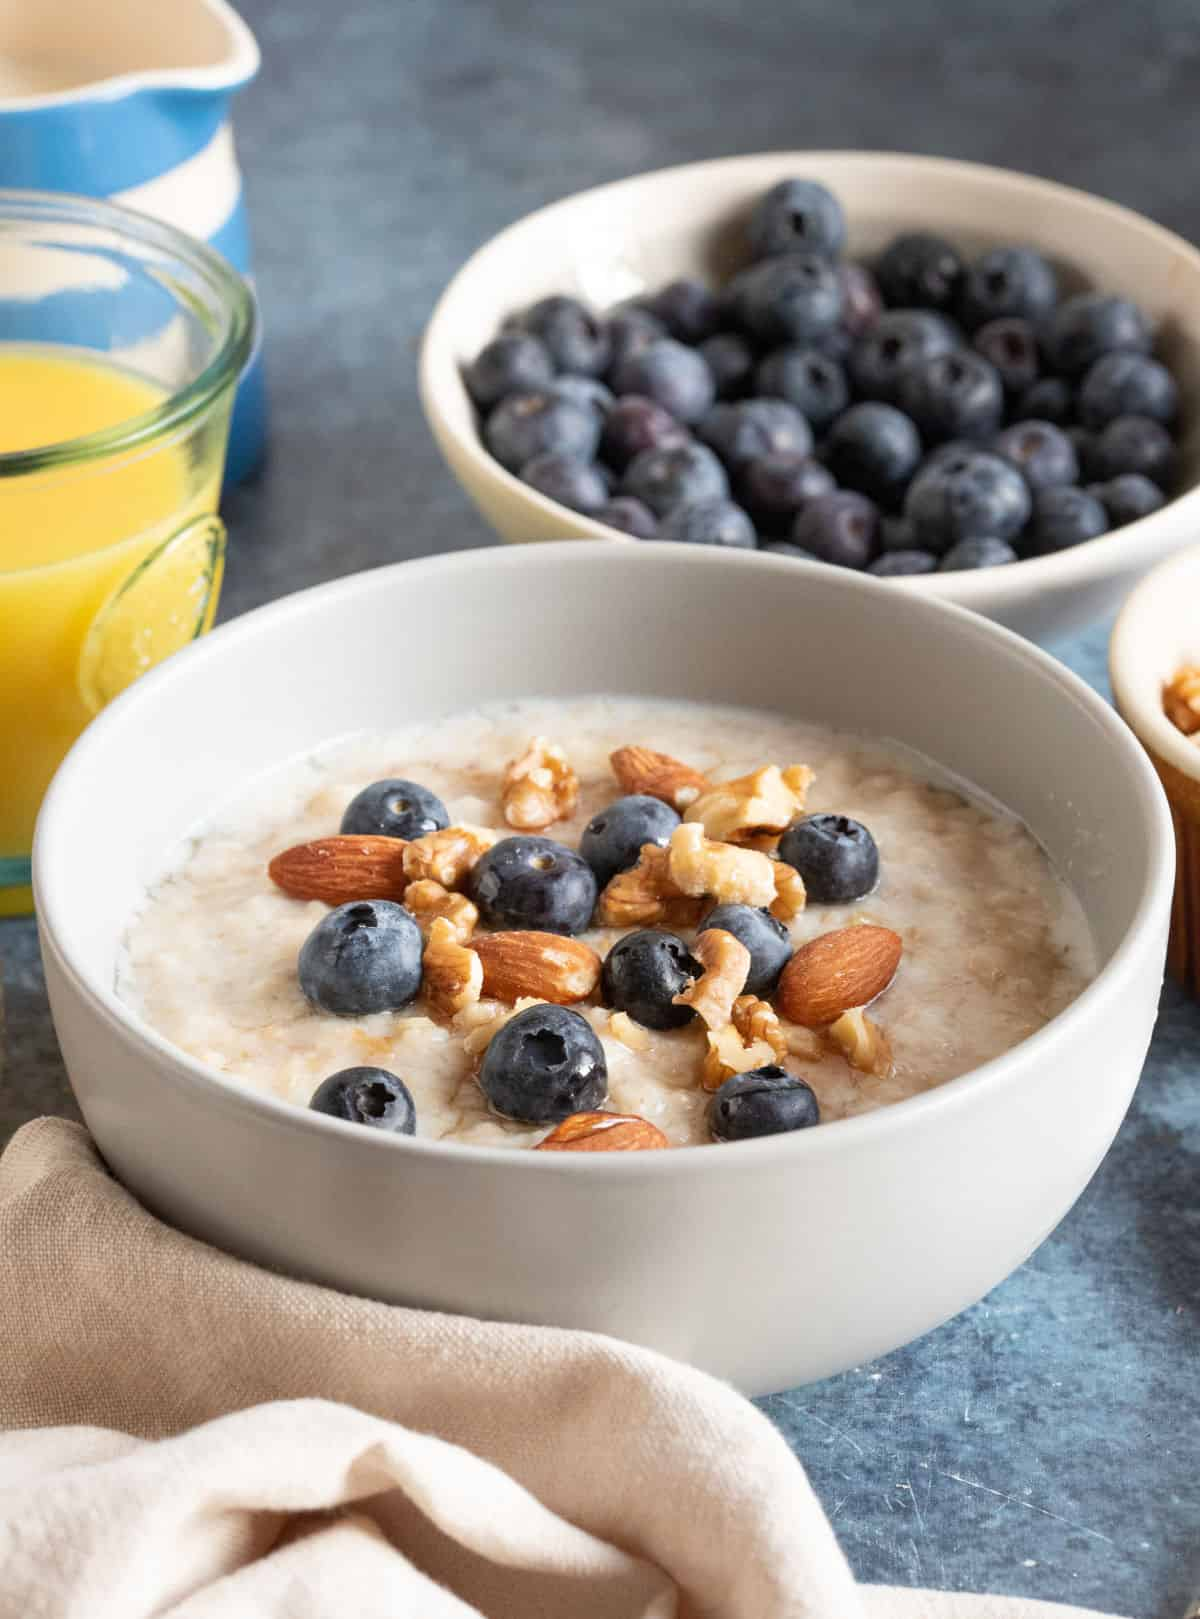 A bowl of slow cooker porridge with fruit and nuts.